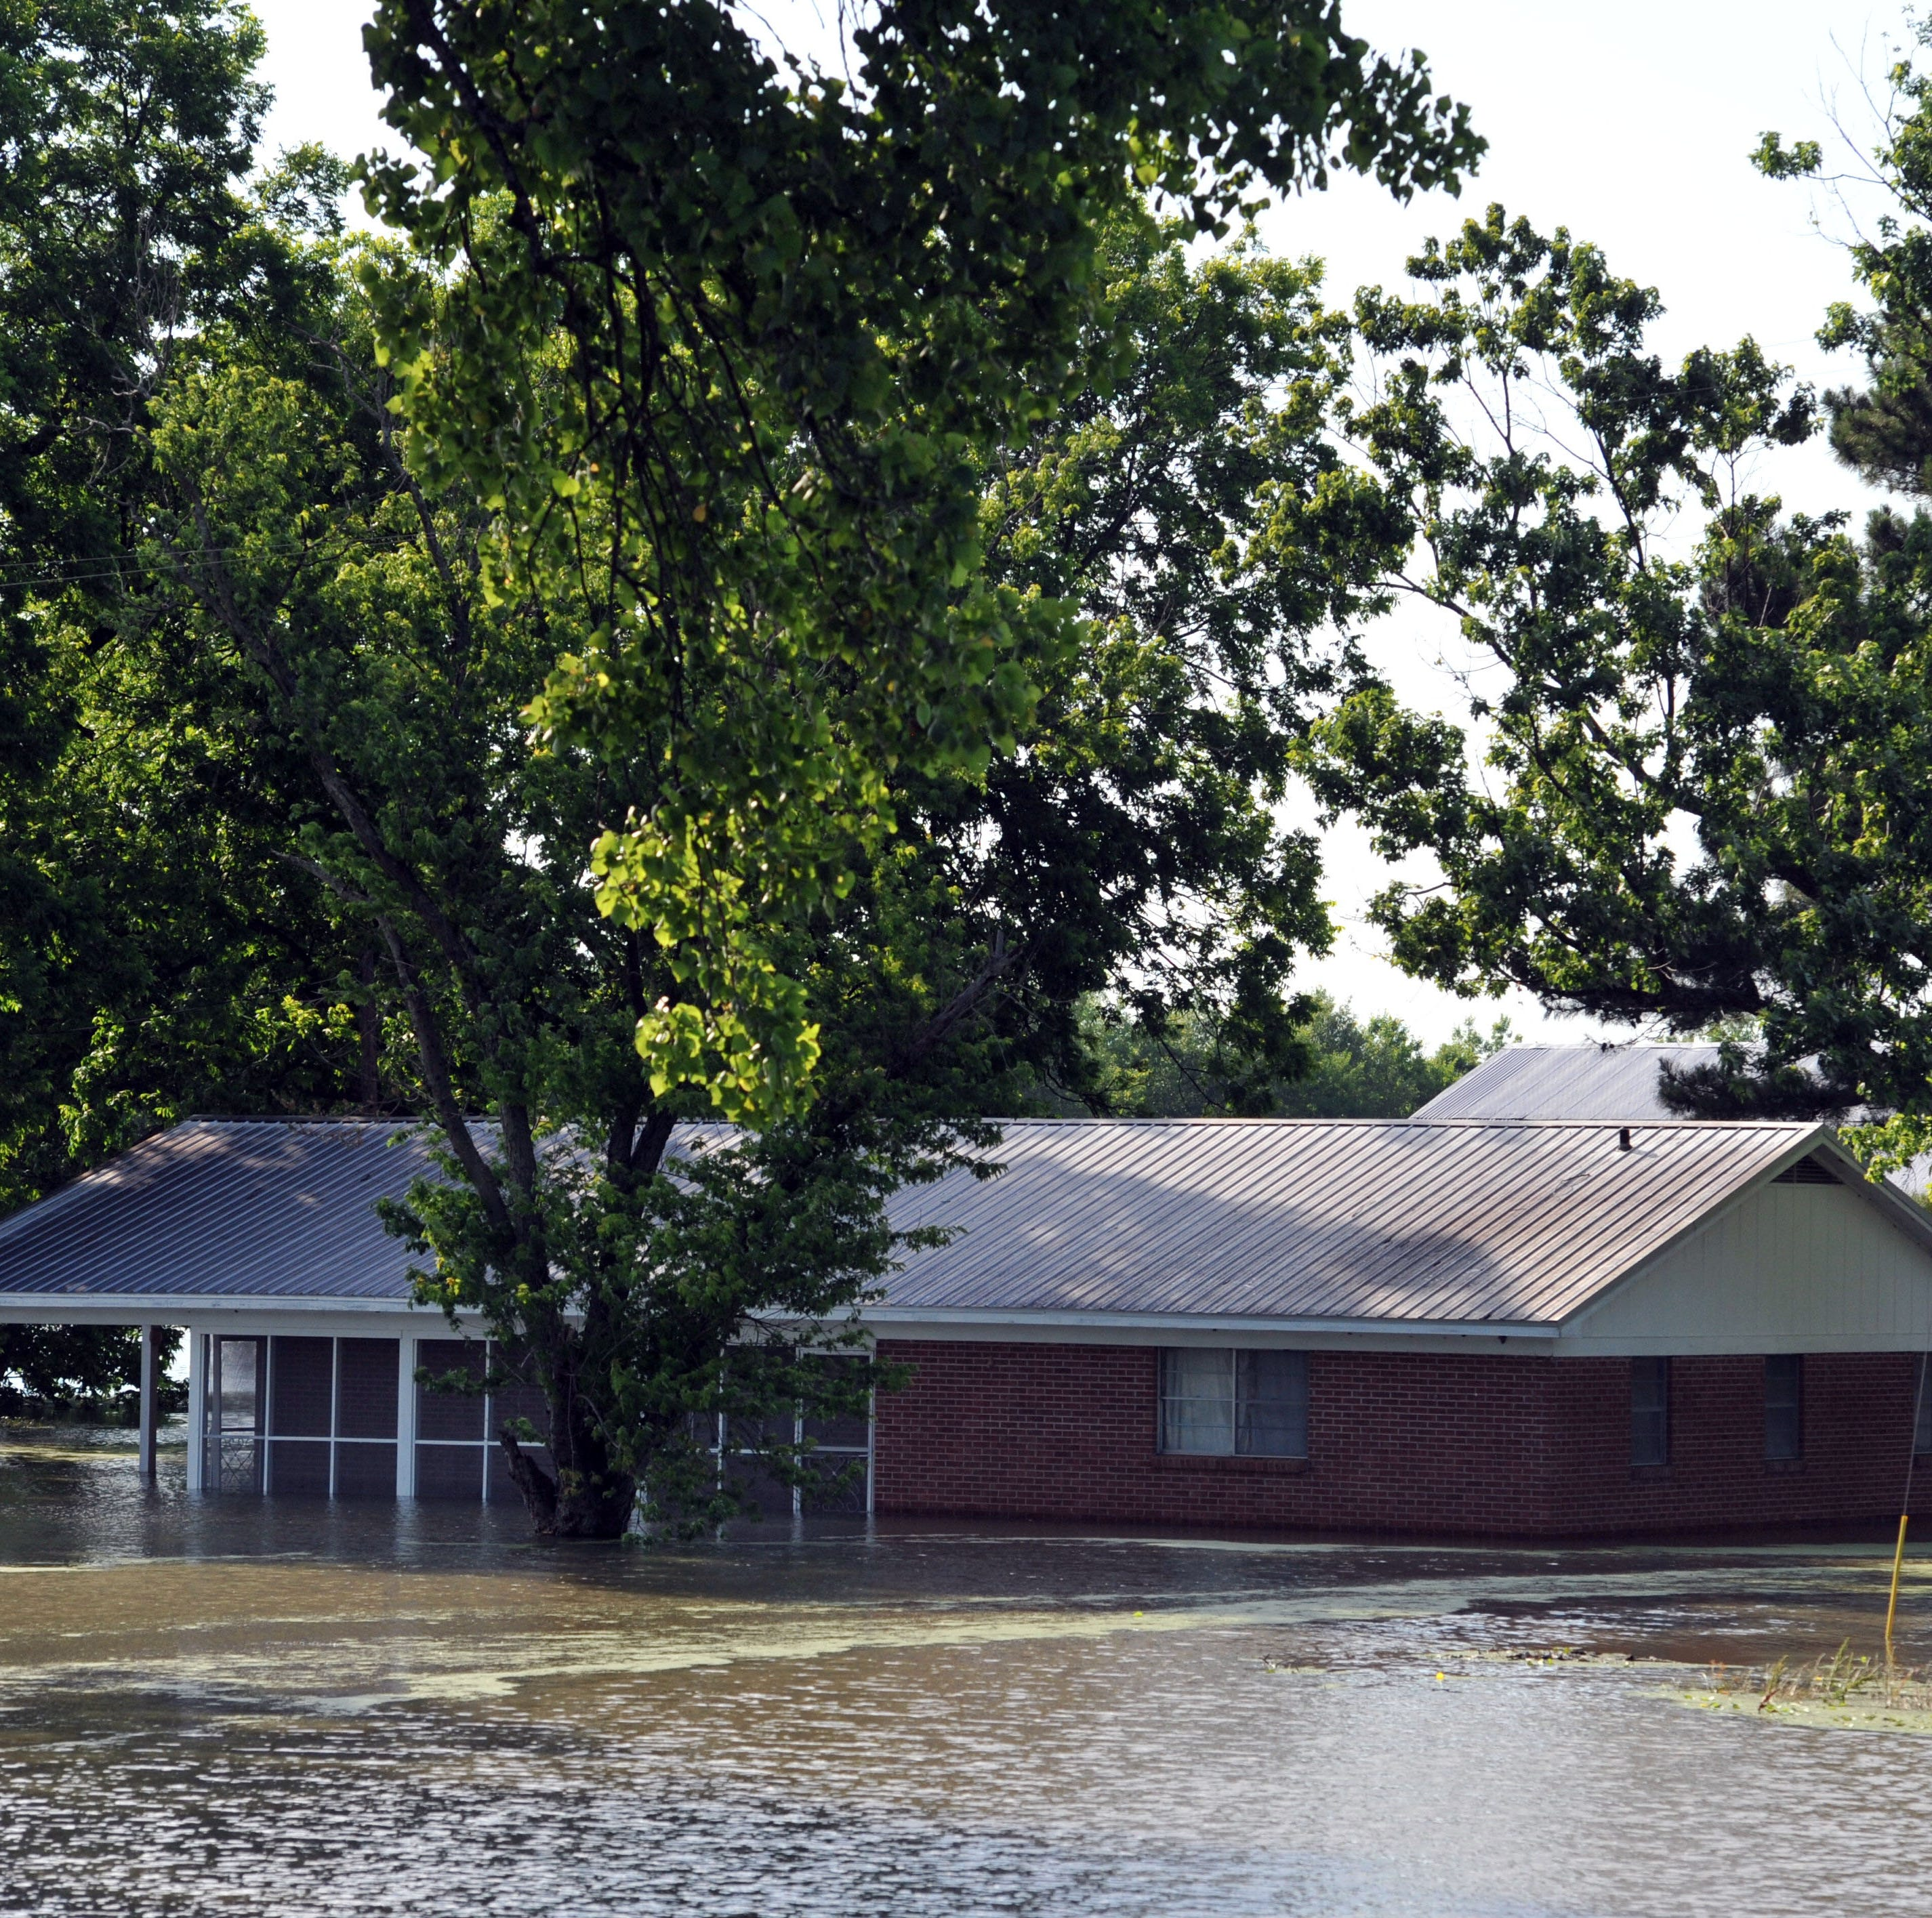 Flooding worst Mississippi's seen since Great Flood of 1927. Here's why.